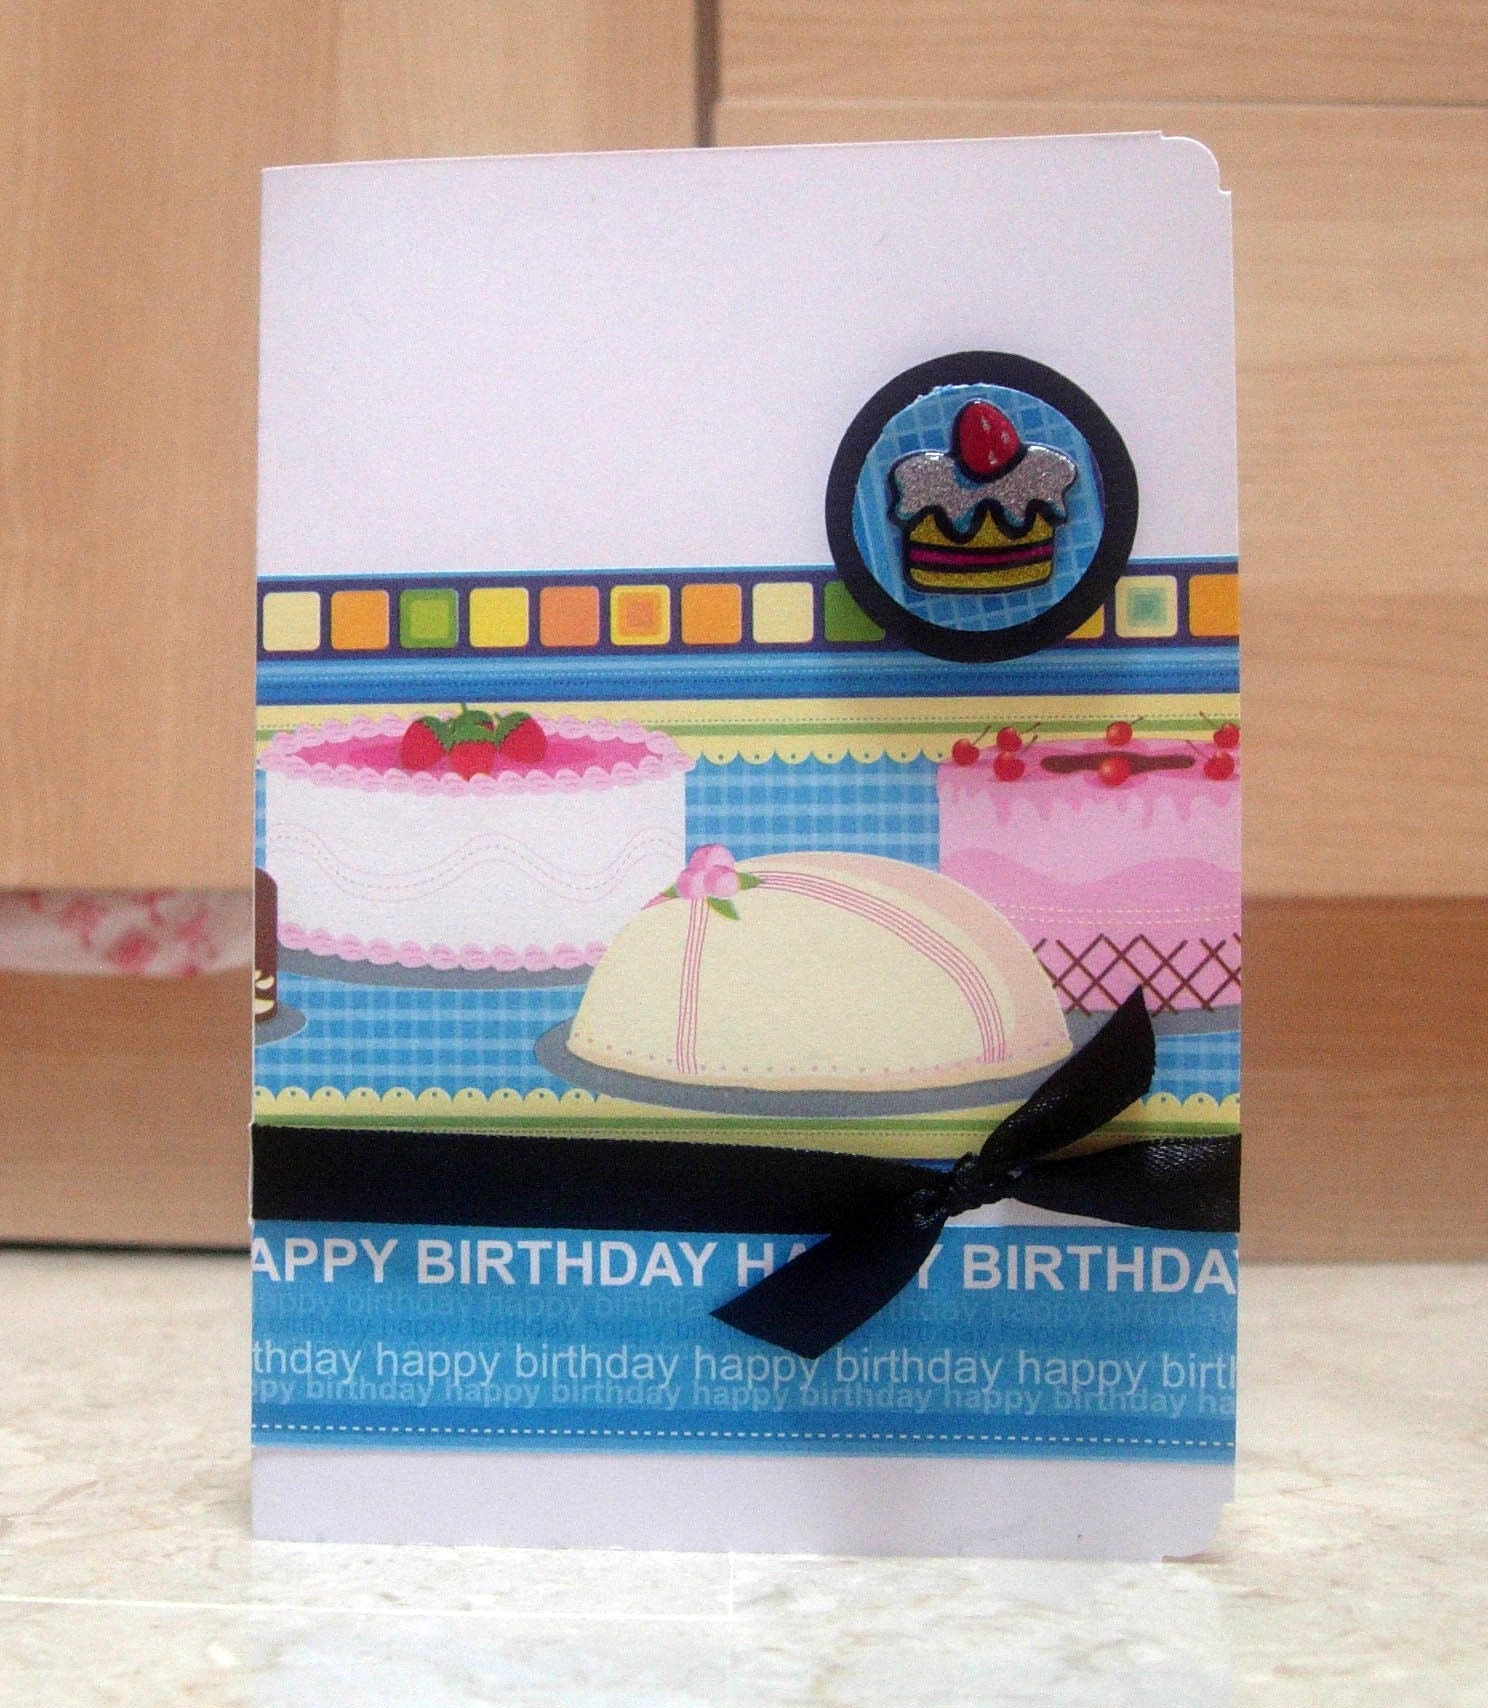 Birthday Cake Blue Card